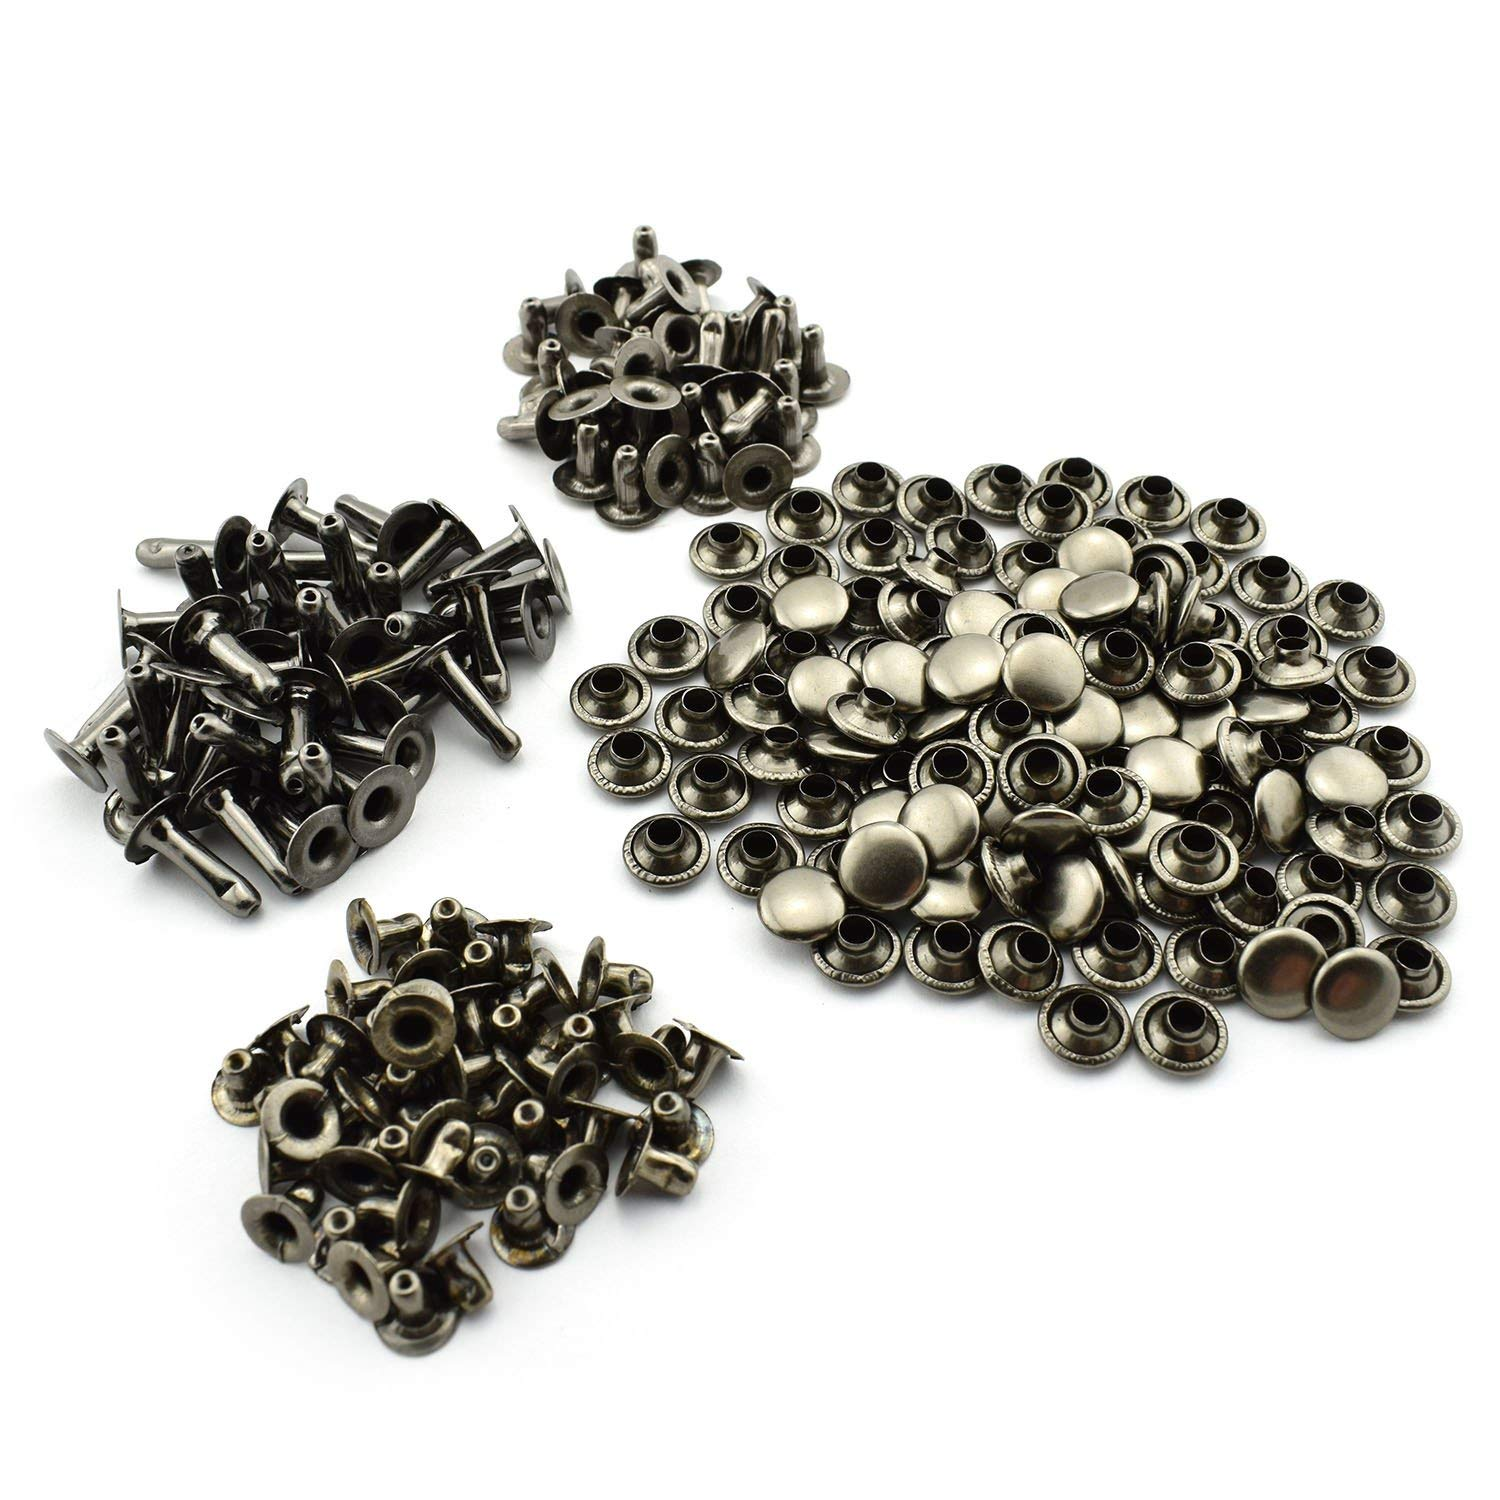 "RuiLing 120pcs 5/16"" Black Rapid Rivets Assorted Kit Round Mushroom Decorative Rivets 8x6/8/12mm DIY Leather Craft Studs Set 3 Length 1/4"" 5/8"" 1/2"""